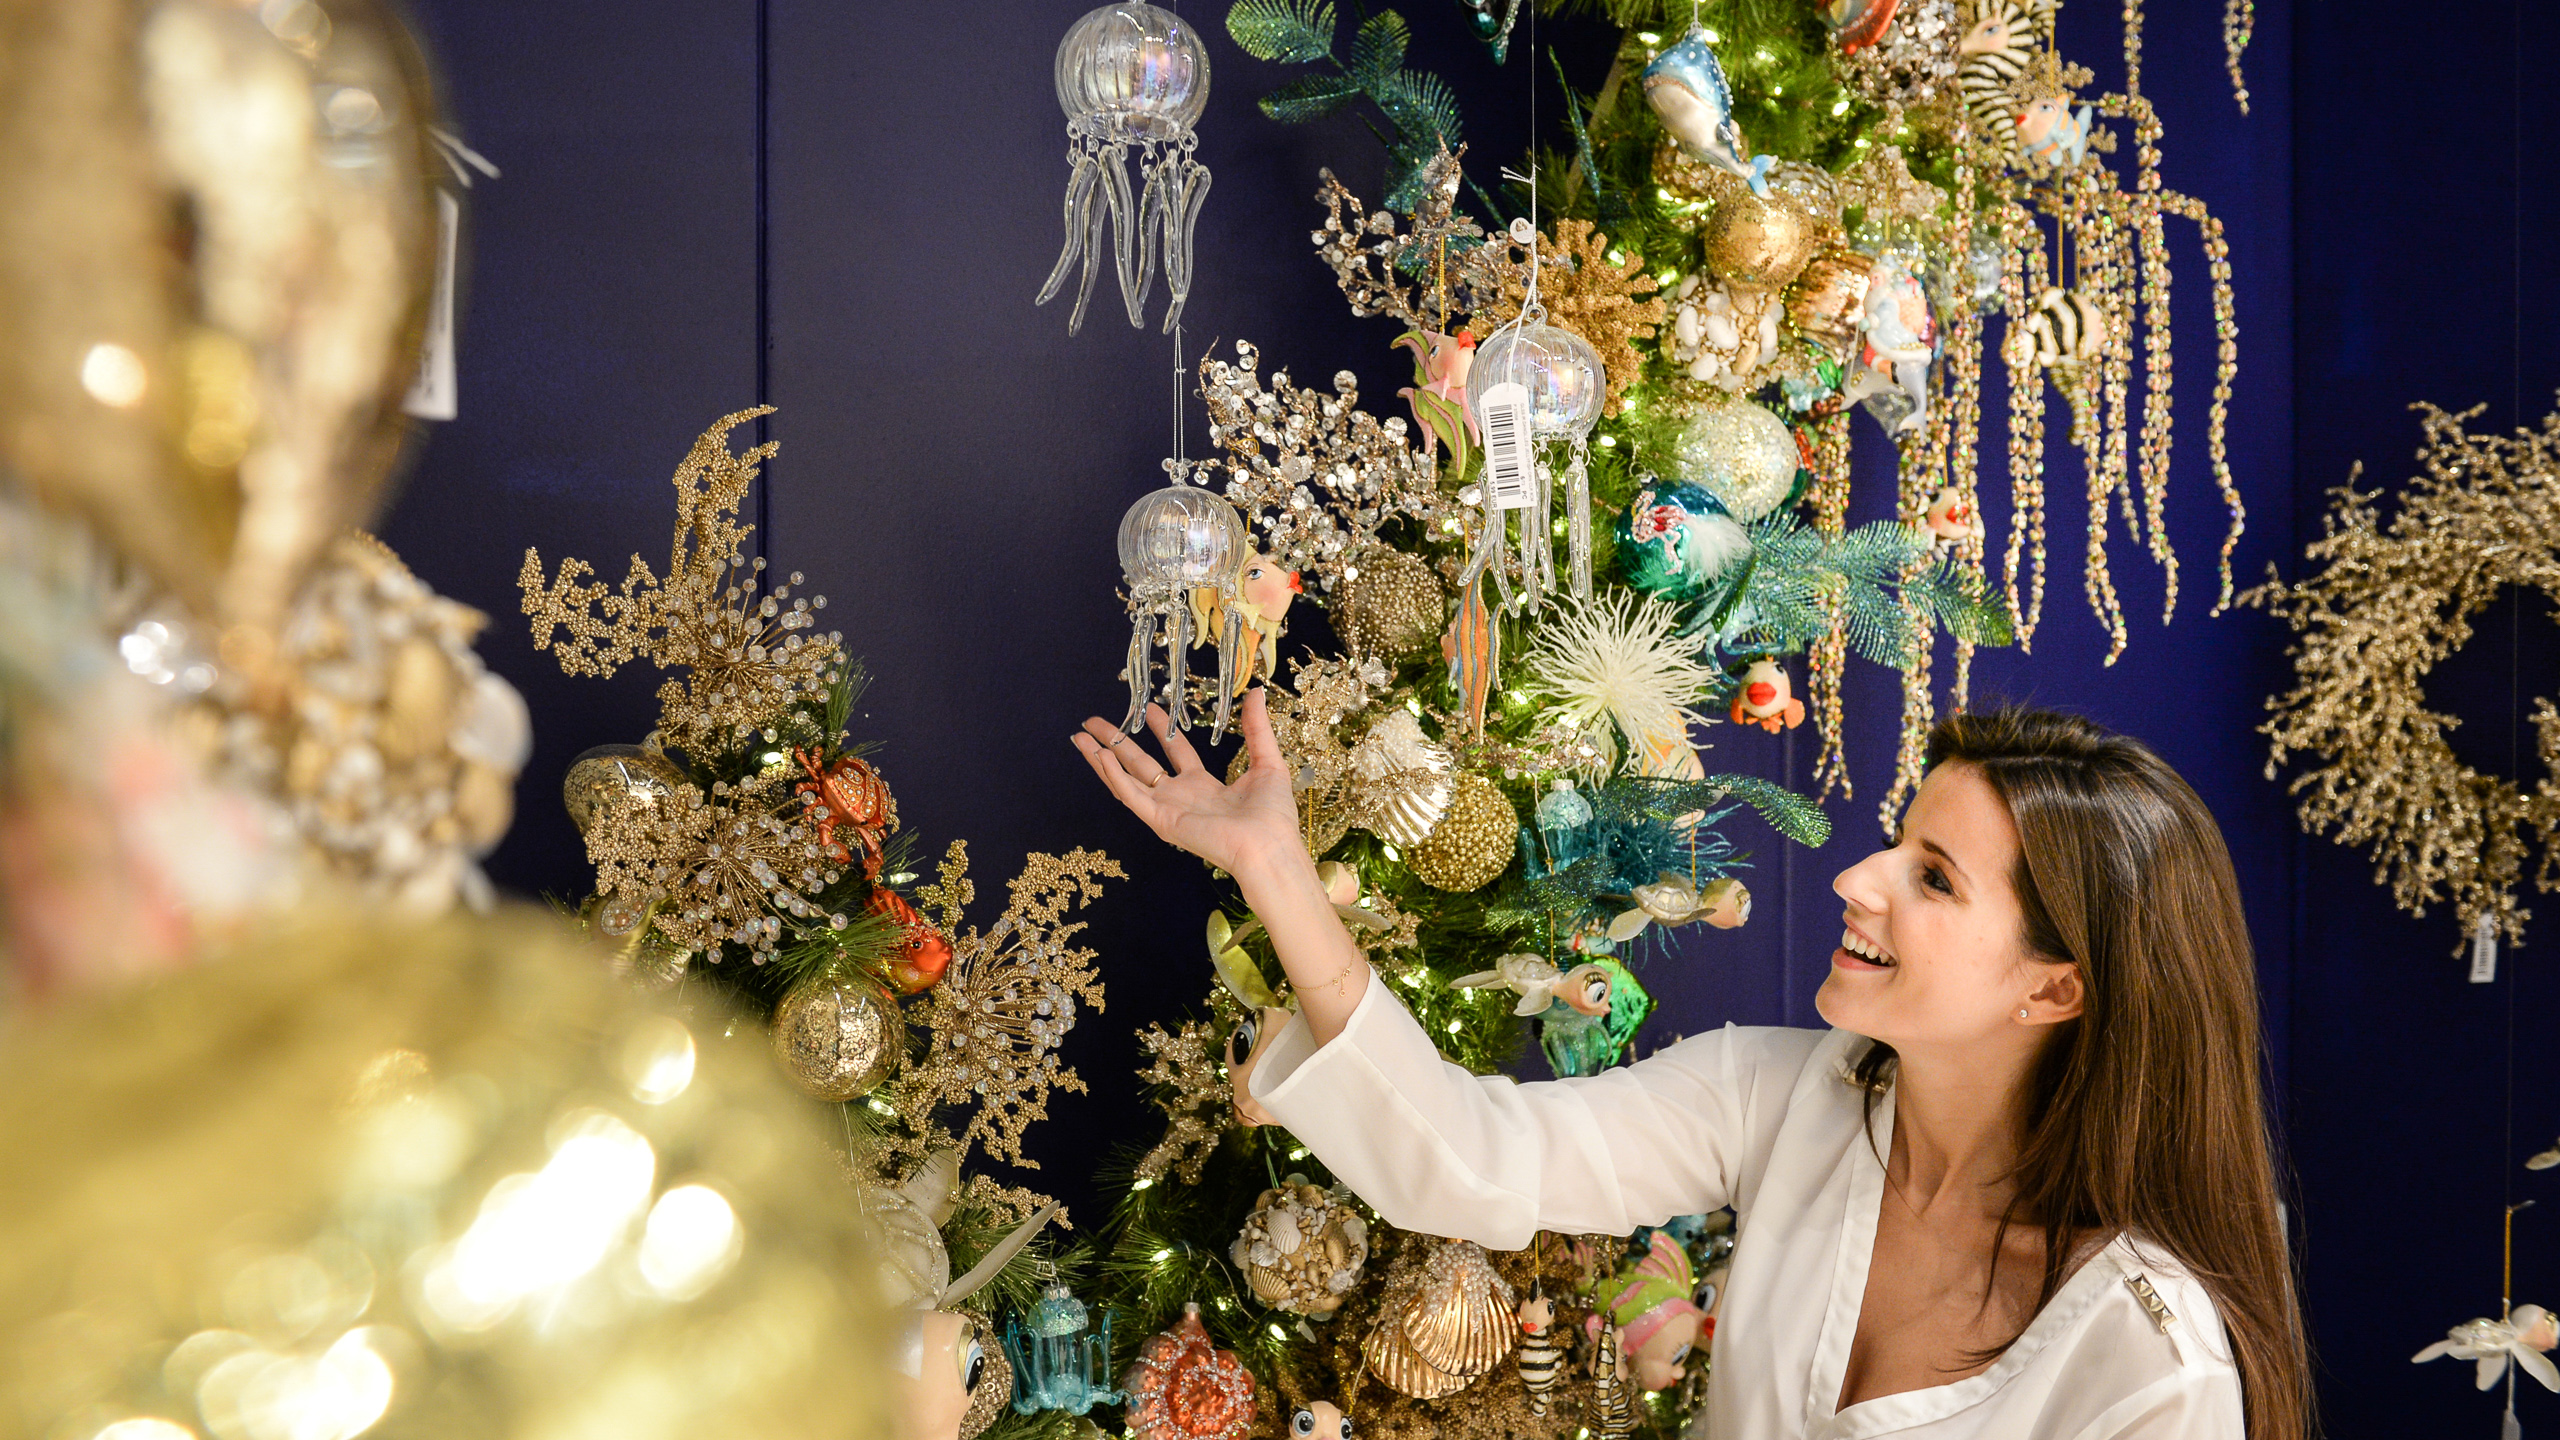 christmasworld 2018 saw 1047 exhibitors from 43 countries childhood emotions were evoked with ideas imagination and design the new christmas decorations - Christmas Decor Trends 2018